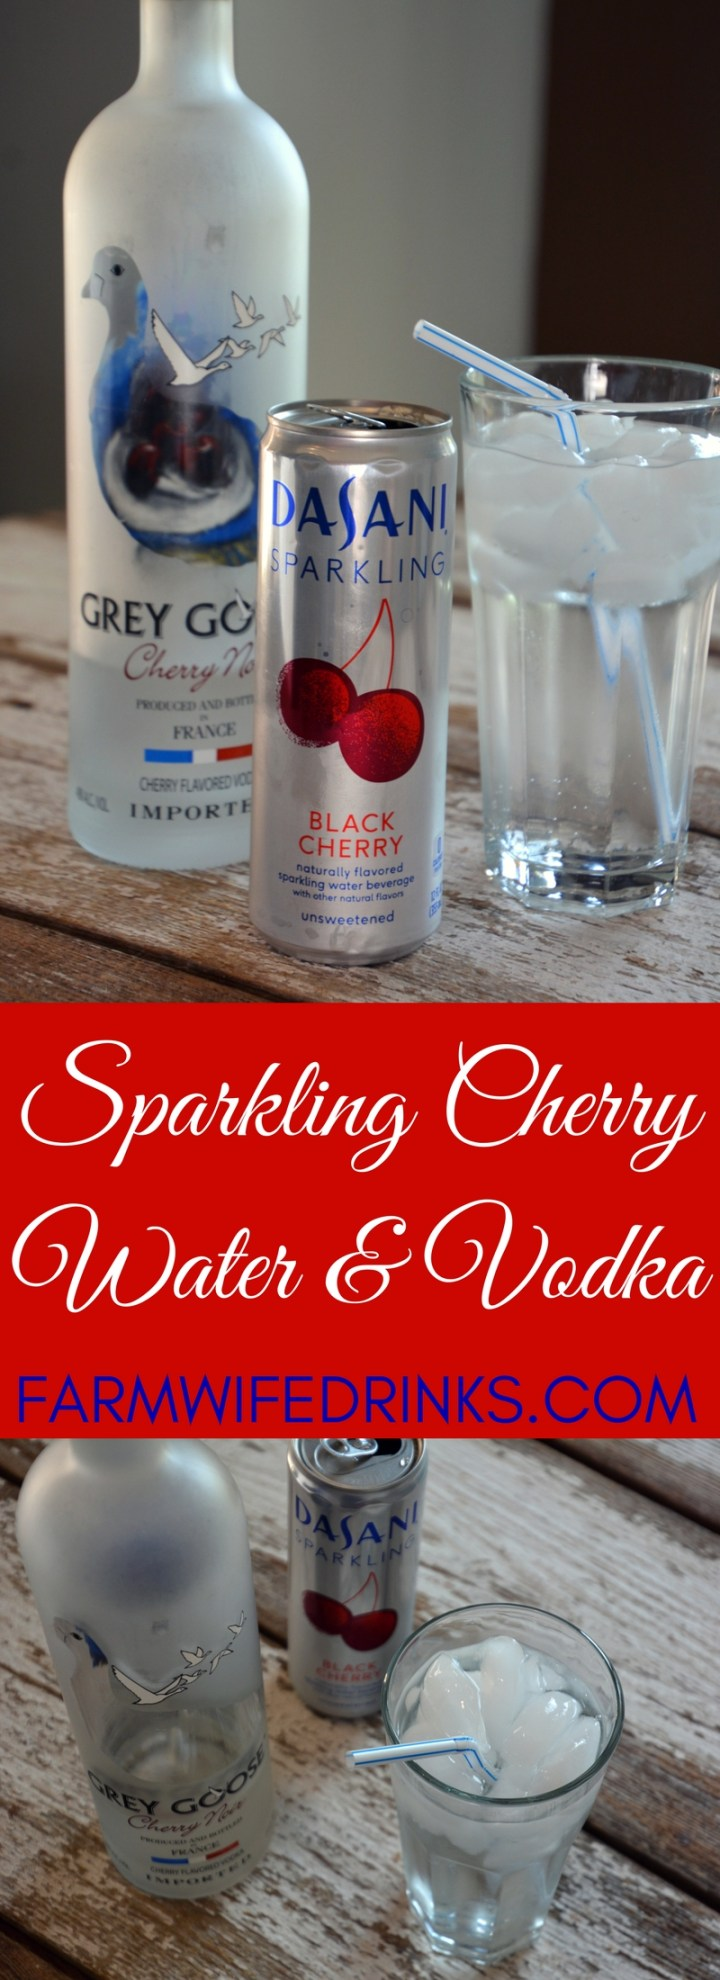 Sparkling Cherry Water and Vodka